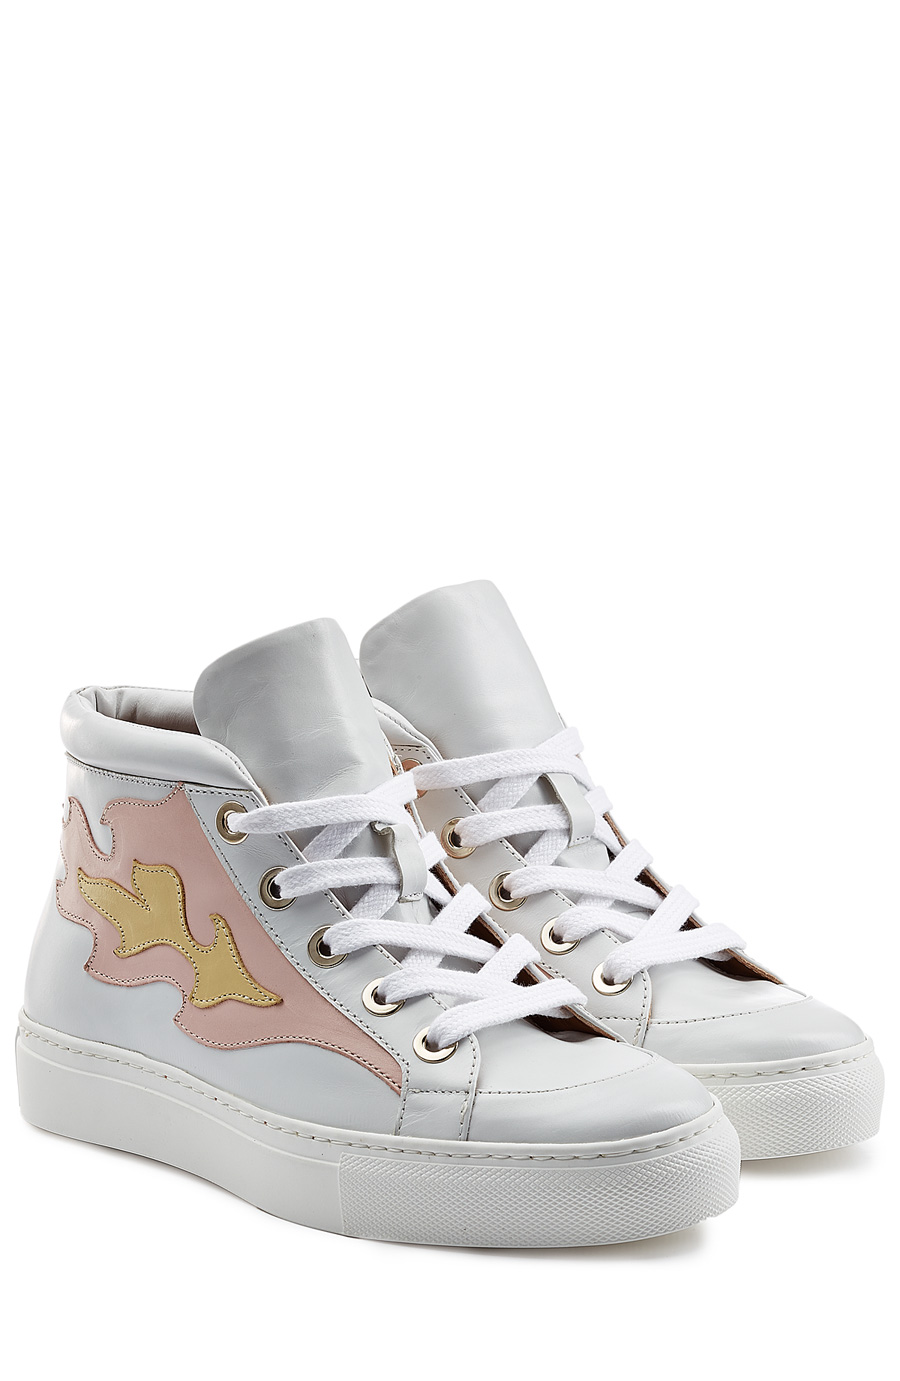 Laurence Dacade Sneakers In White